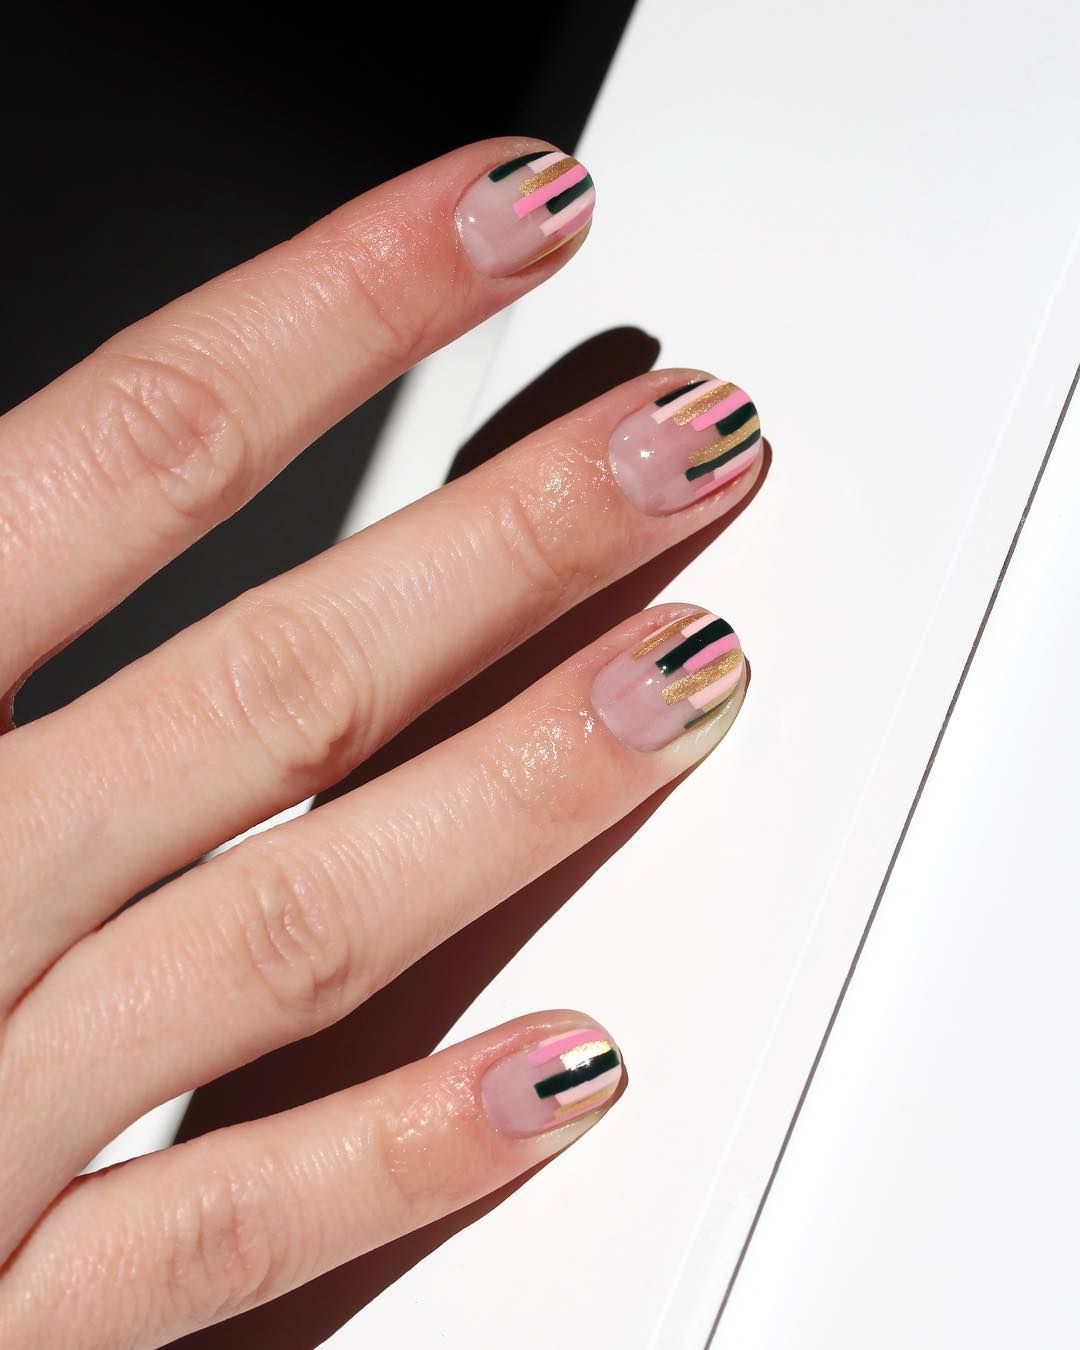 Chelsea King On Instagram Tgif Here S A Tip I Always Keep Clear Base Top Gel Polish On My Nails It Prevents Breaks Chip Nails My Nails Nail Polish